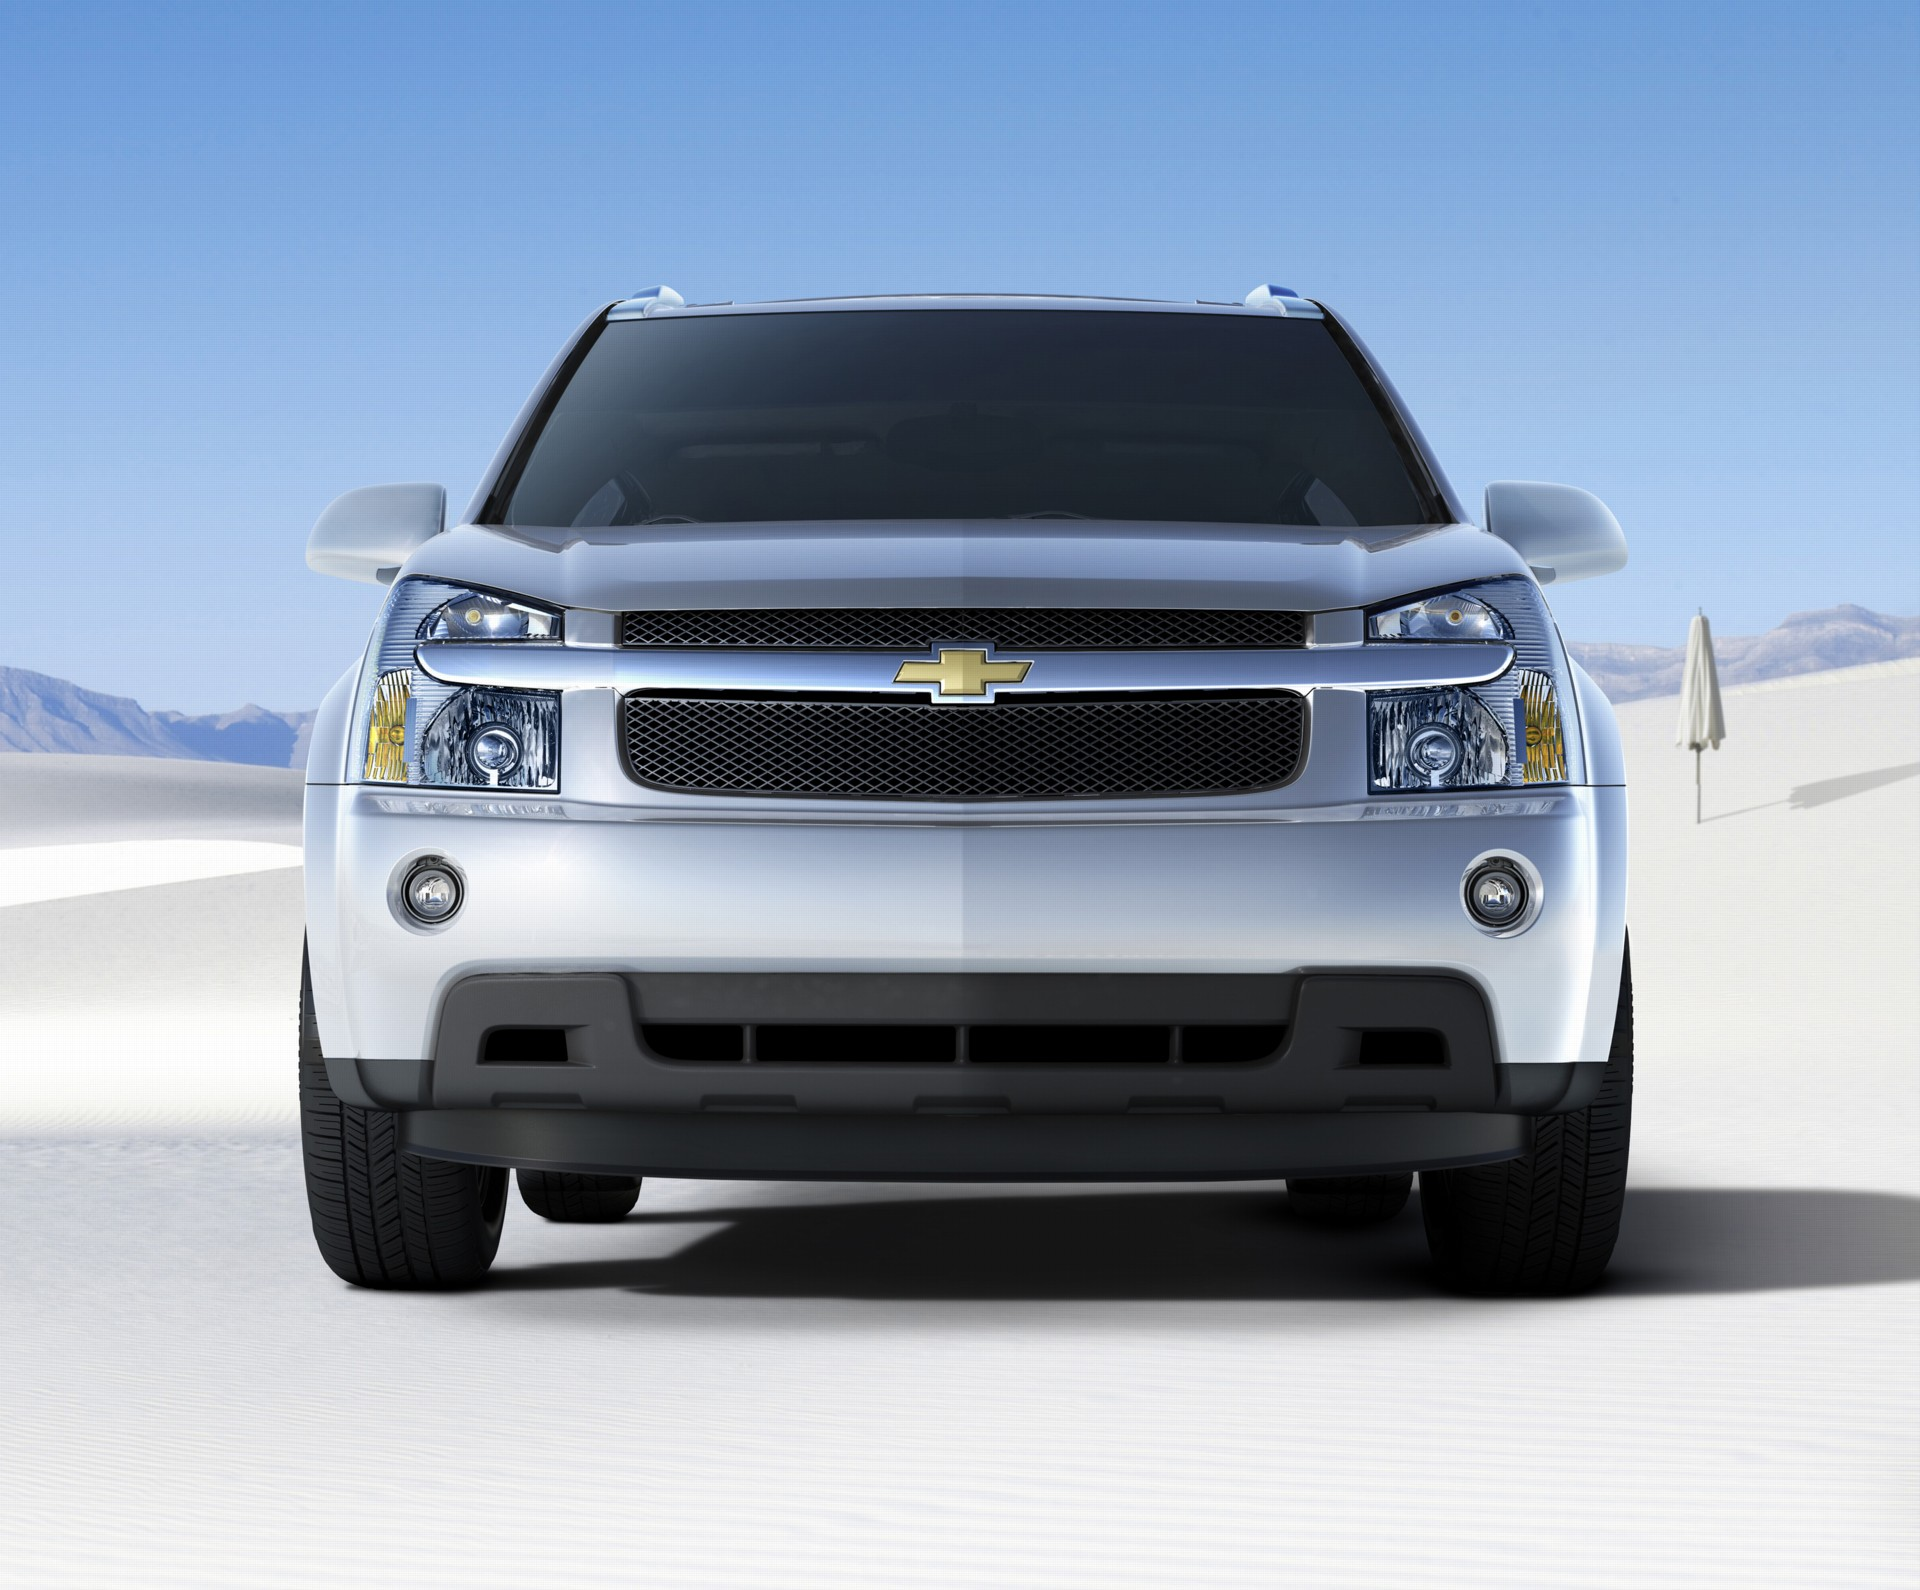 2007 chevrolet equinox pictures, history, value, research, news